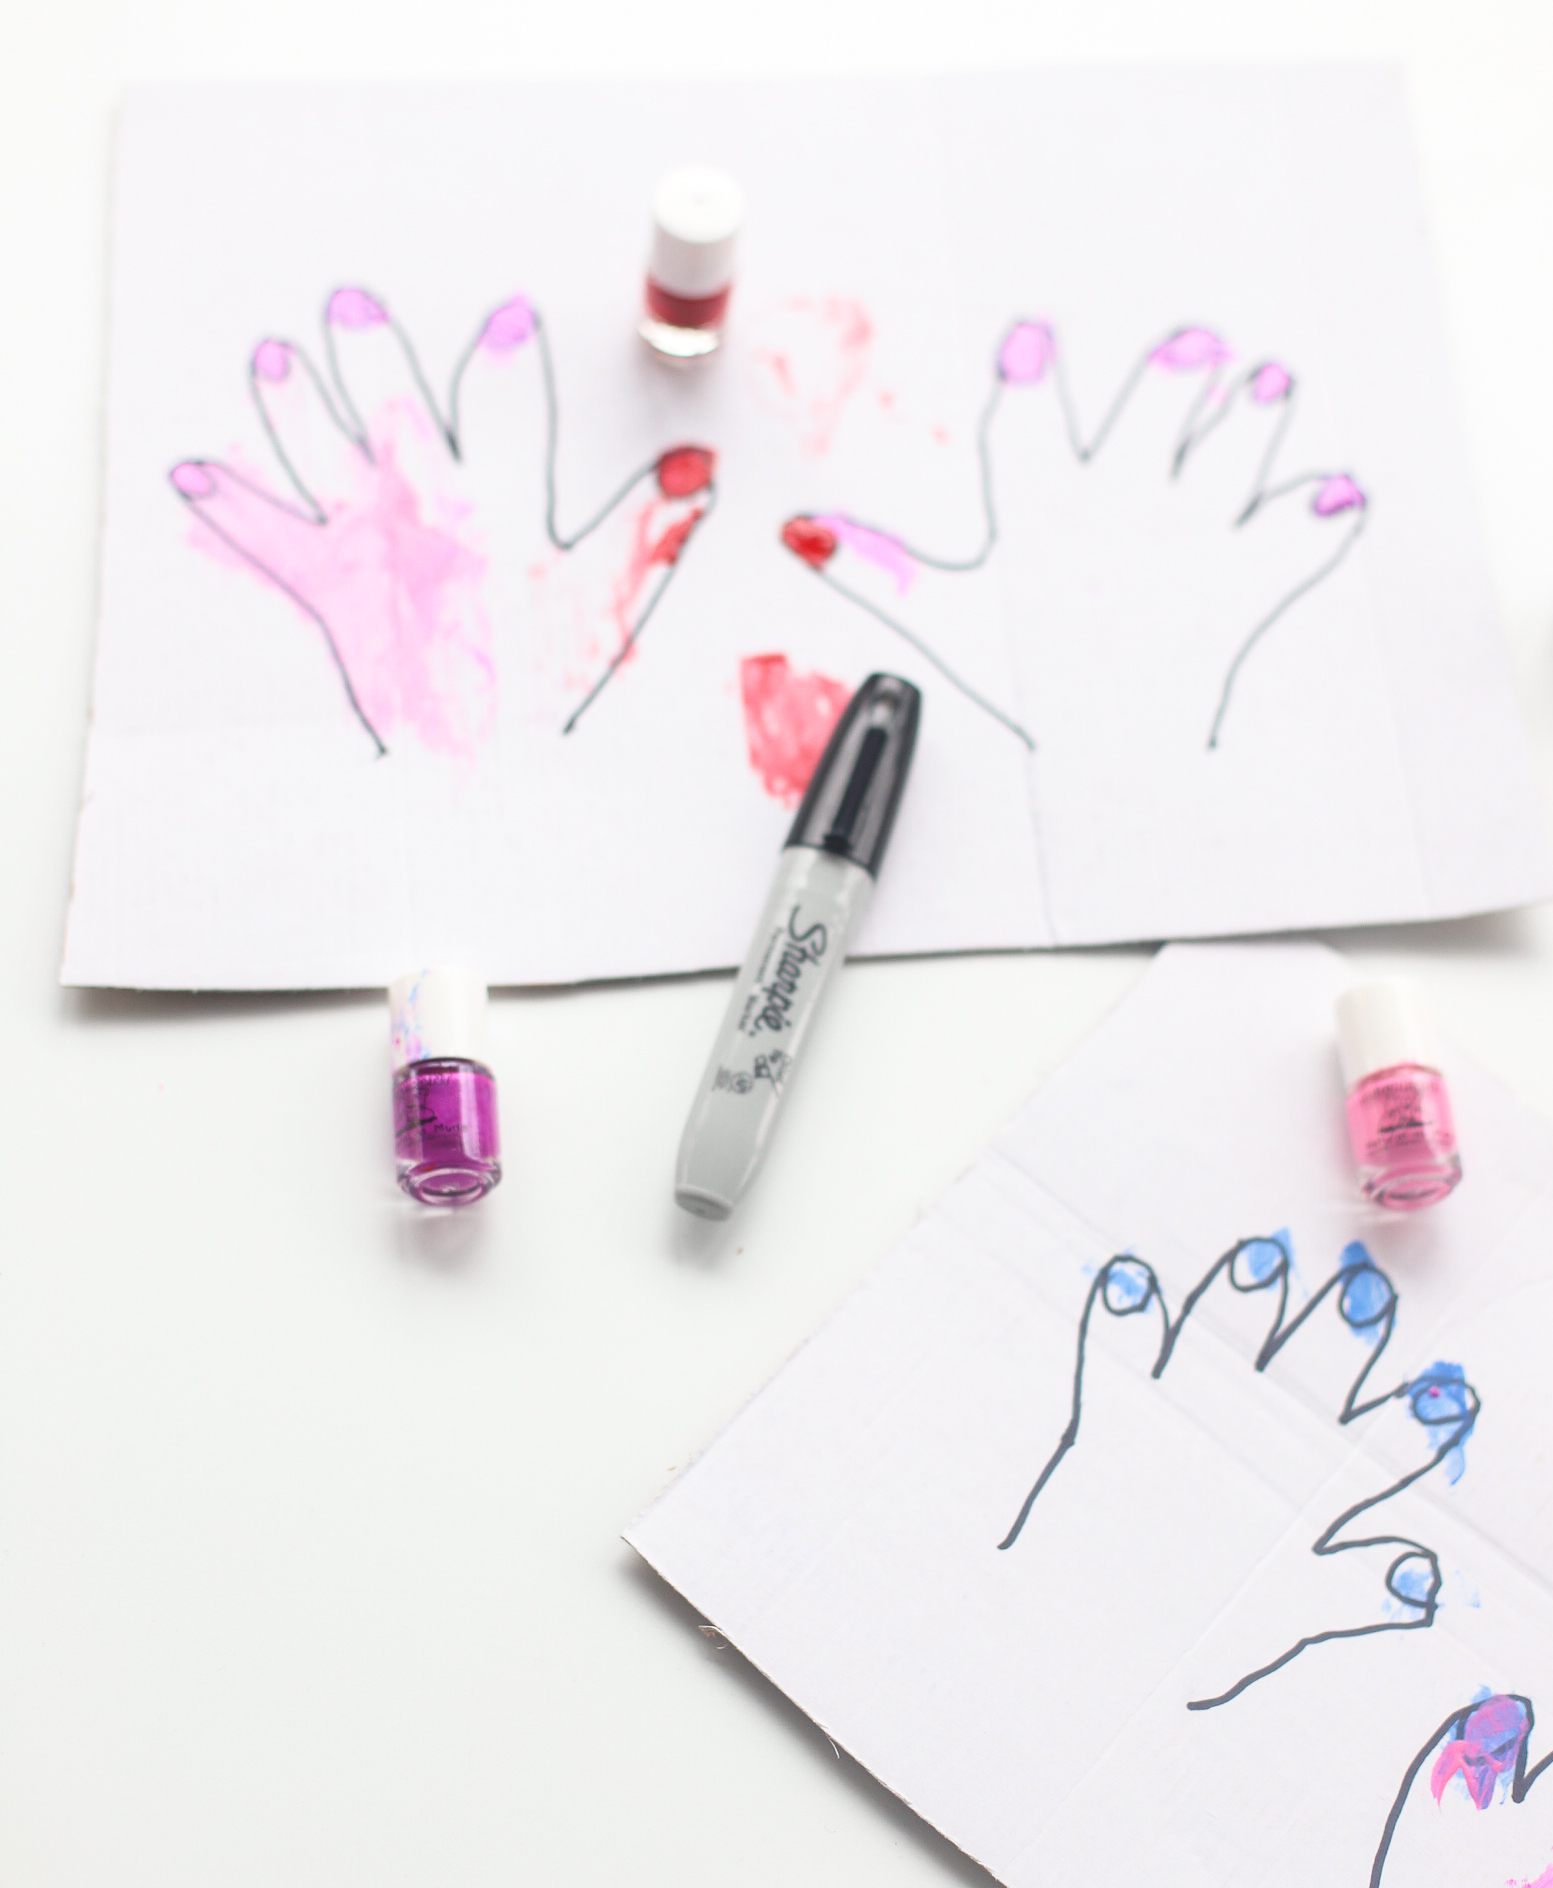 This DIY Kids Cardboard Manicure Activity is easy to set up, everything you will need you already have at home, and kids LOVE painting the pretend nails with nail polish! | glitterinc.com | @glitterinc